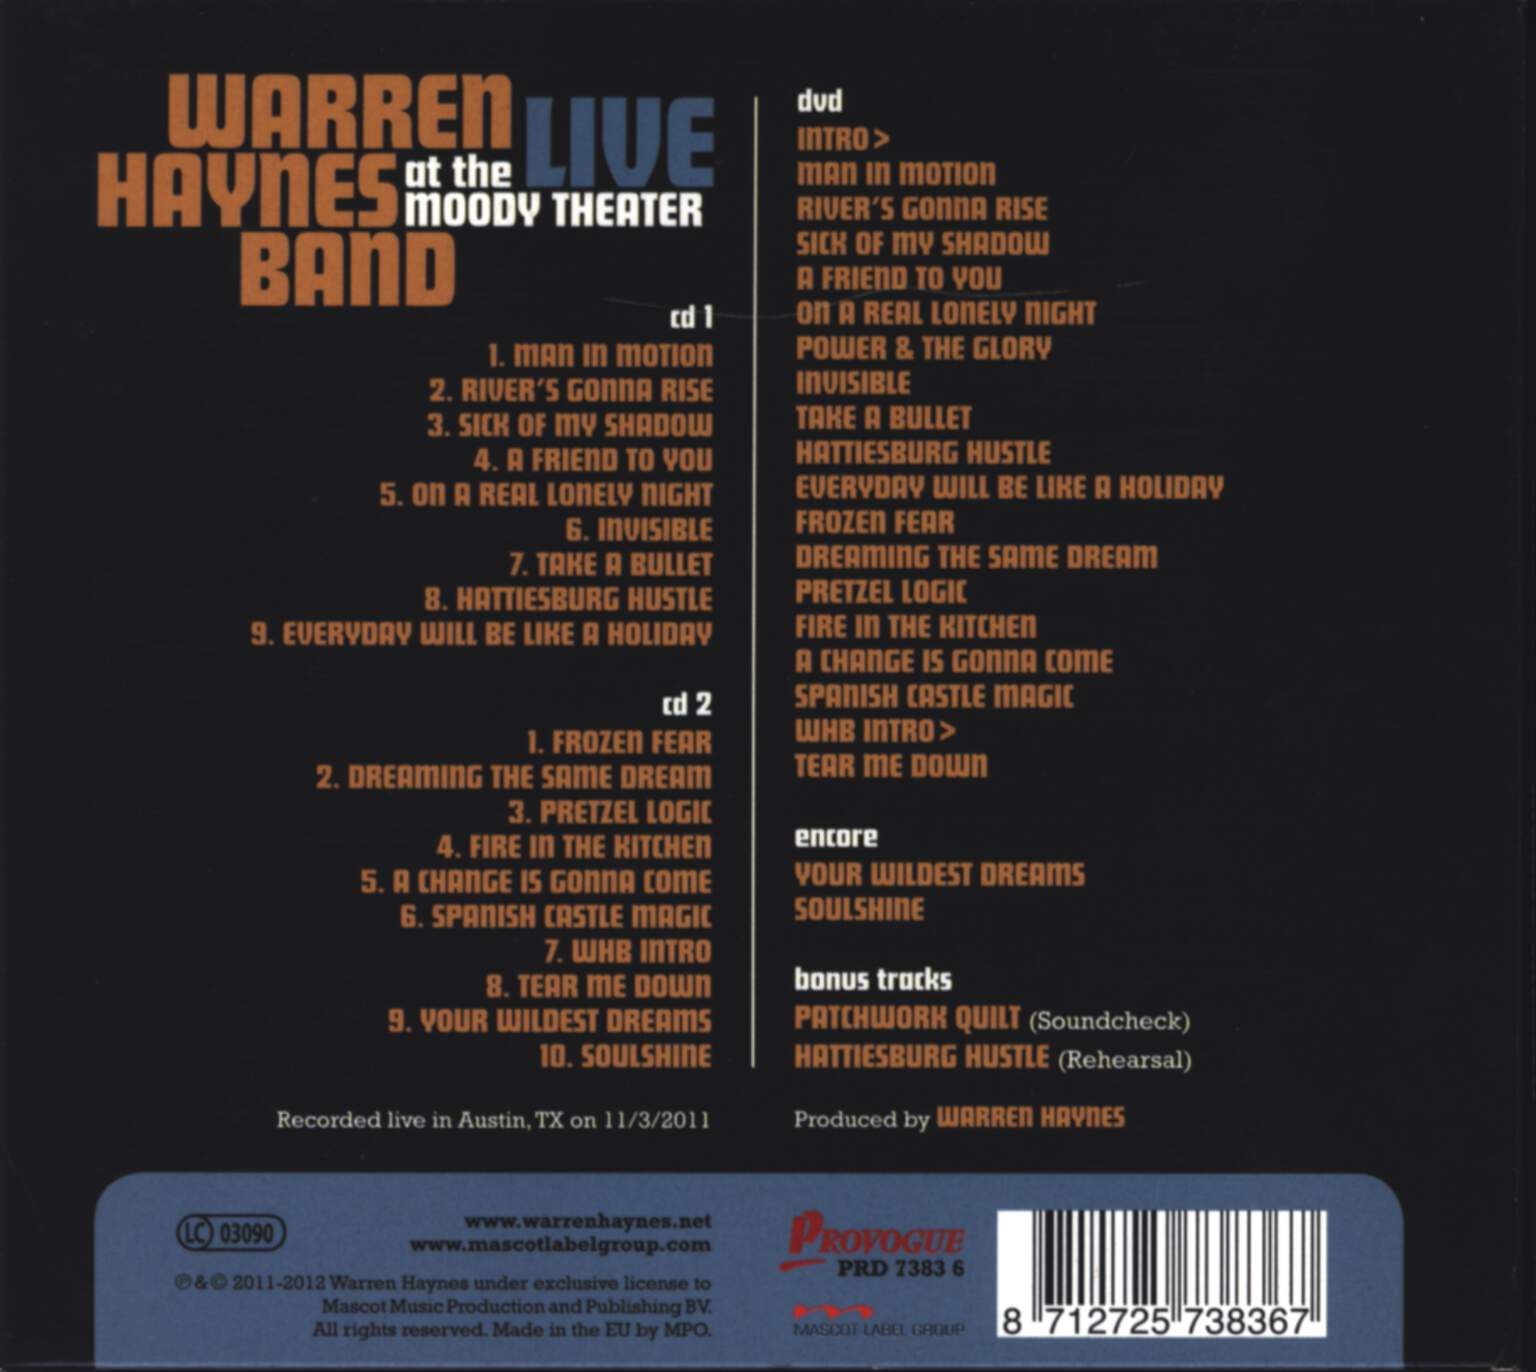 Warren Haynes Band: Live At The Moody Theater, CD